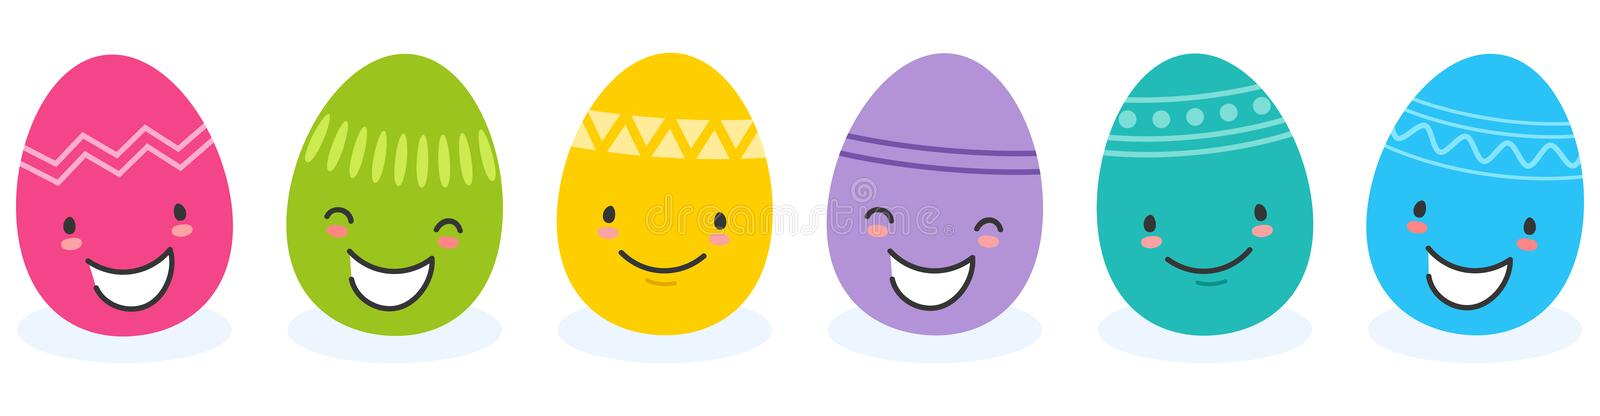 Simple vector illustration of six colorful flat design easter eggs, cartoon characters with funny faces. Isolated on white background royalty free illustration